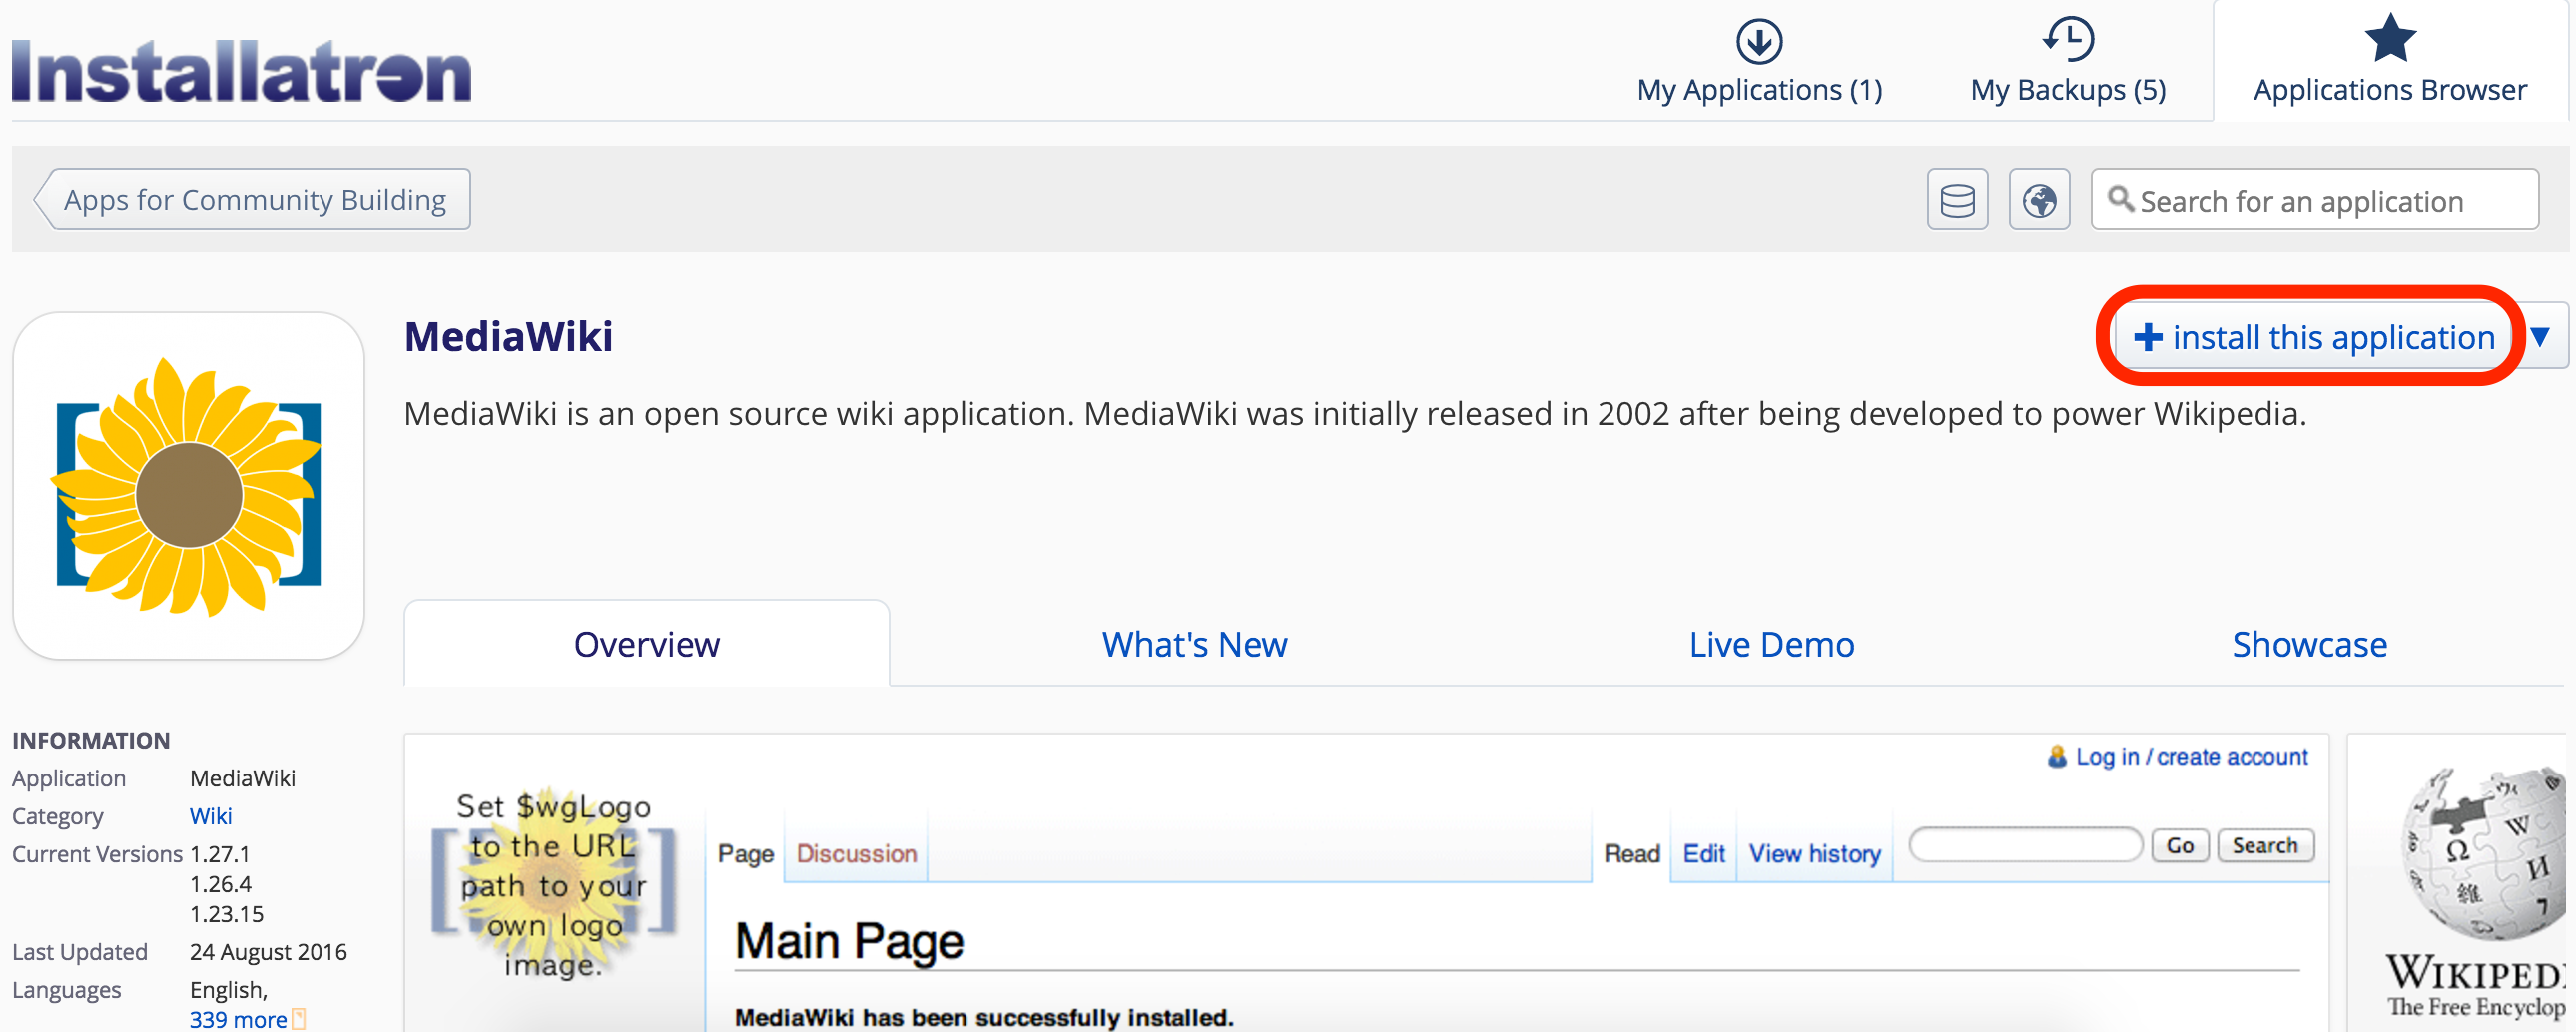 Install button on the Installatron for MediaWiki